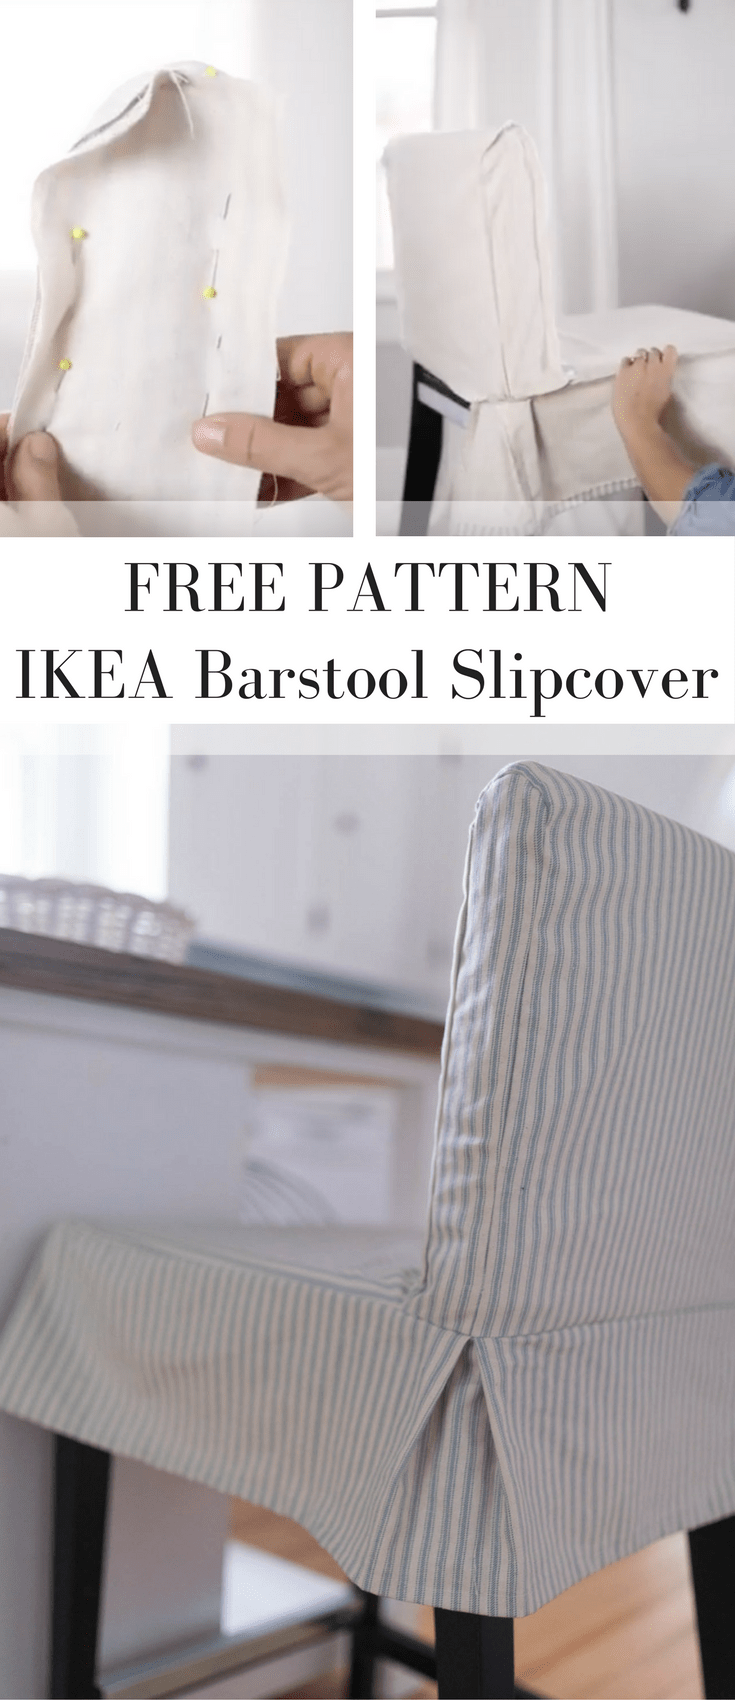 Learn How To Sew A Parsons Chair Slipcover For The IKEA HENRIKSDAL Bar Stool This Cover Sewing Pattern Includes Video Tutorial